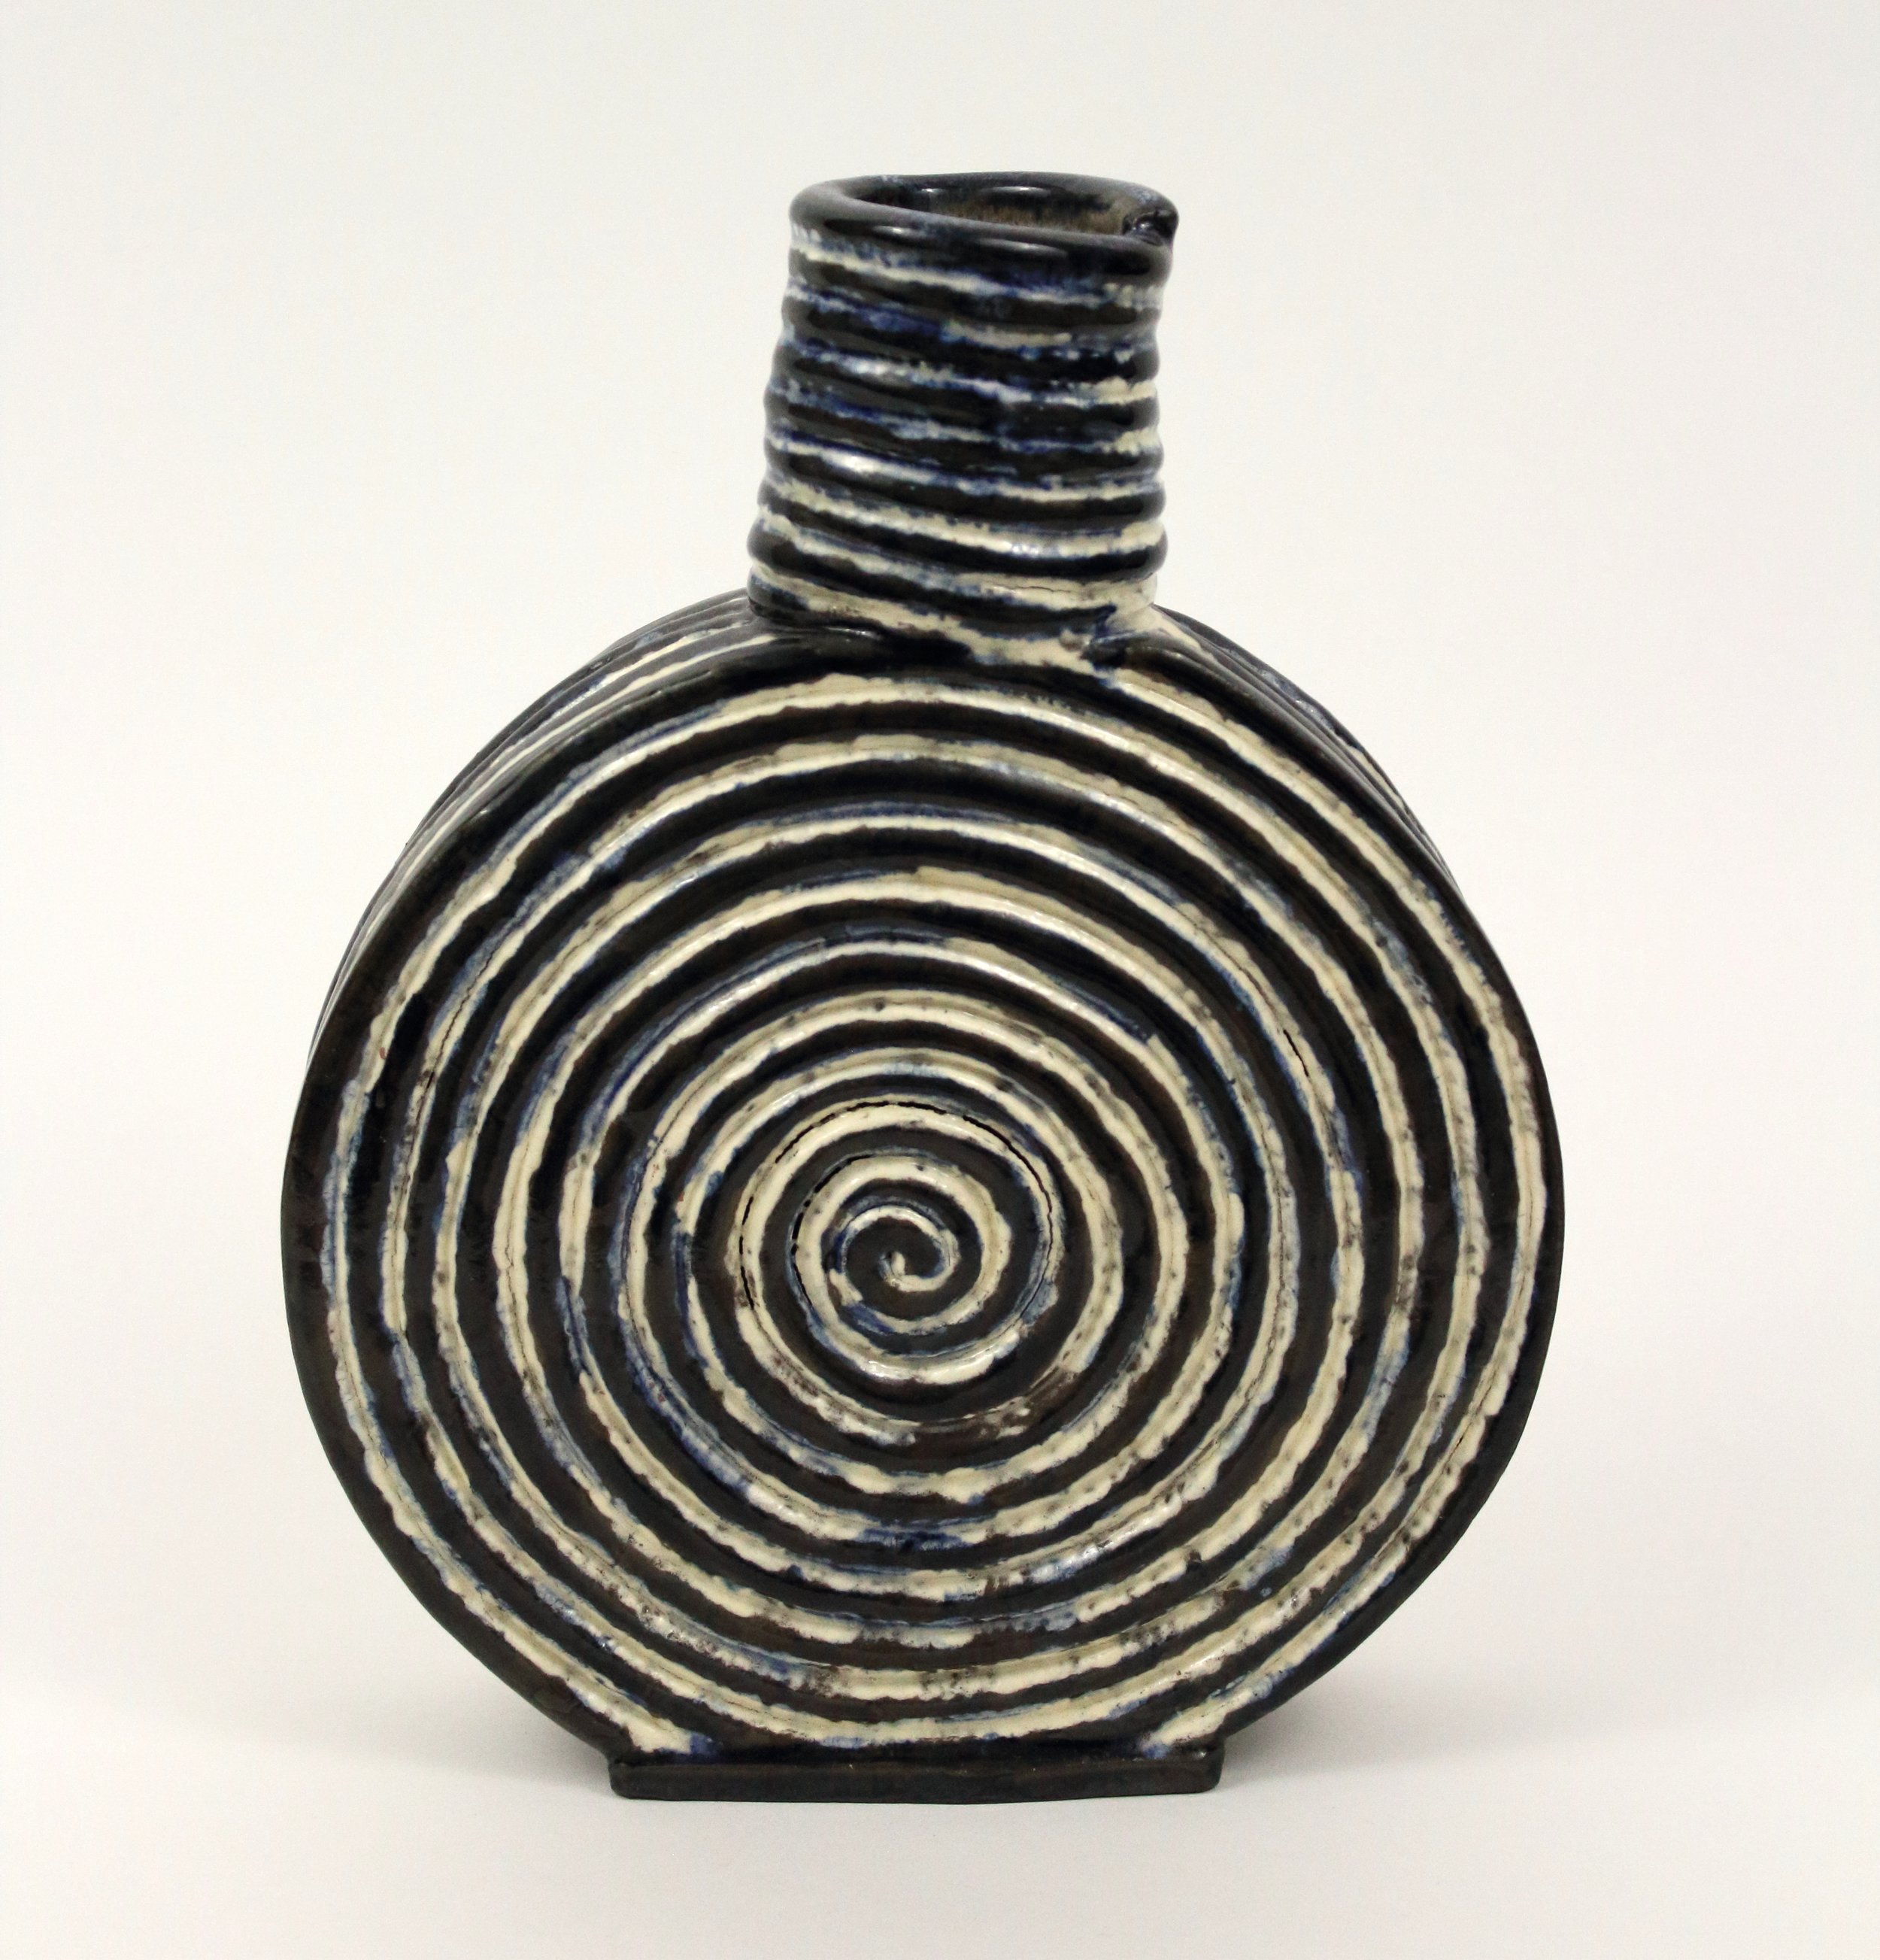 "Small Vase   Stoneware, slip, wash, and glaze  9"" x 7 1/2"" x 1 1/2""  $120  Click image to enlarge   Inquire."